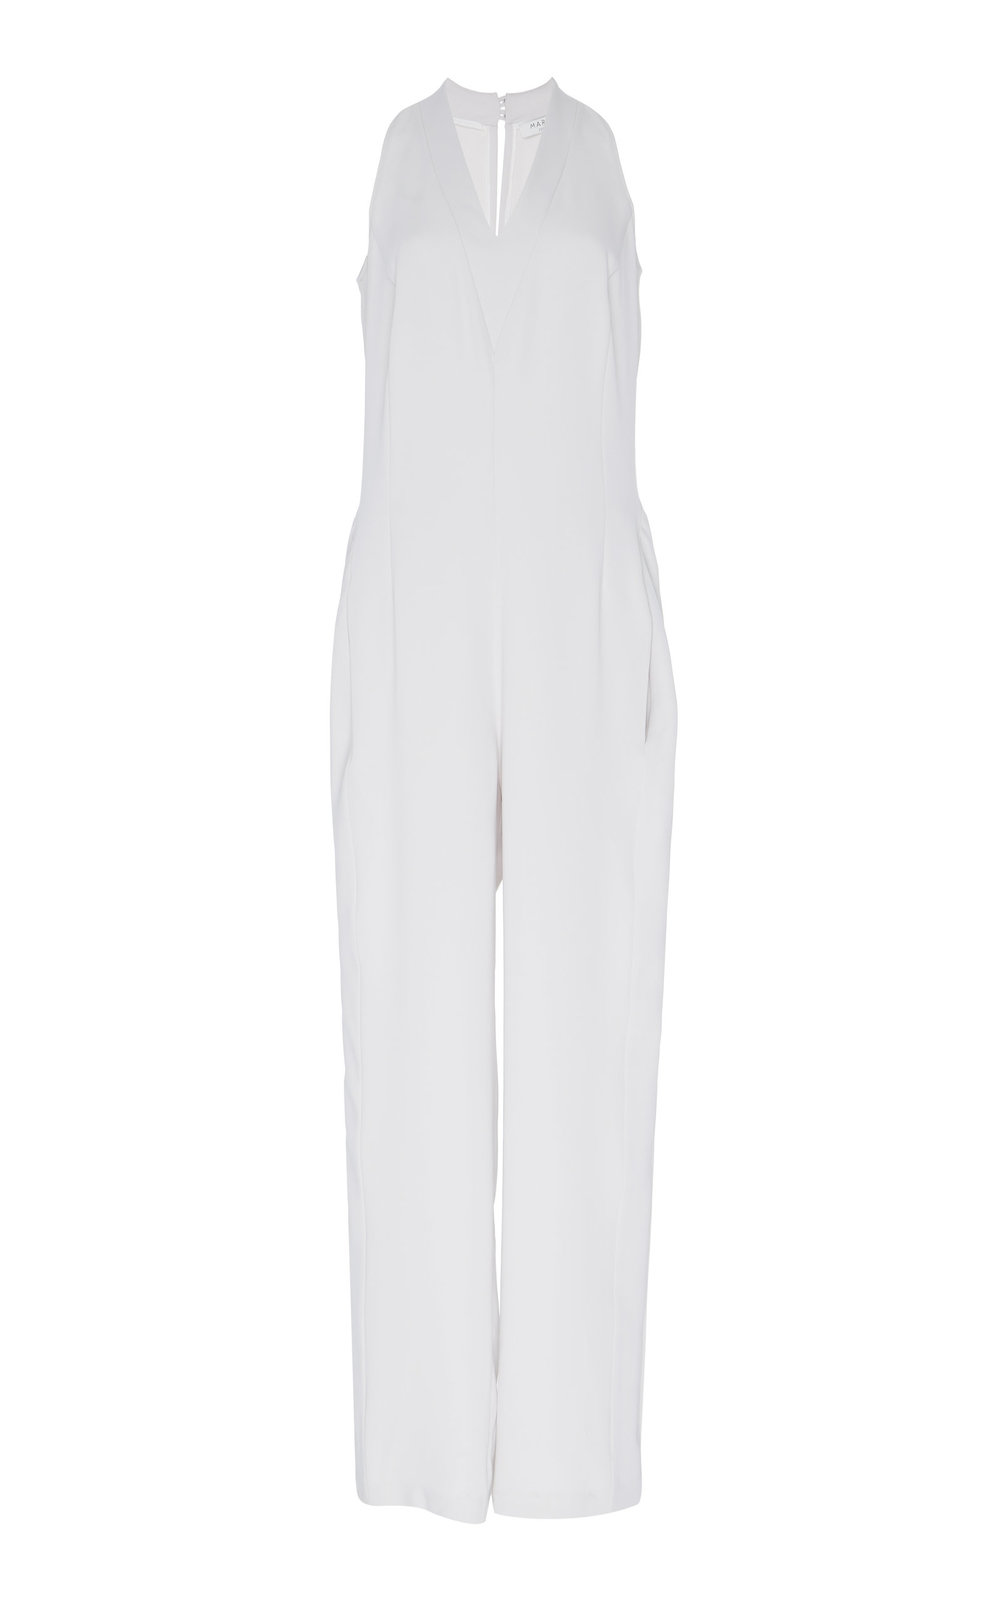 Snowdrop Jumpsuit - IVORY  Sharply cut in a straight-leg shape, this chic jumpsuit features a sleeveless design and V-neckline. The minimalistic silhouette is refined by sophisticated cuts.